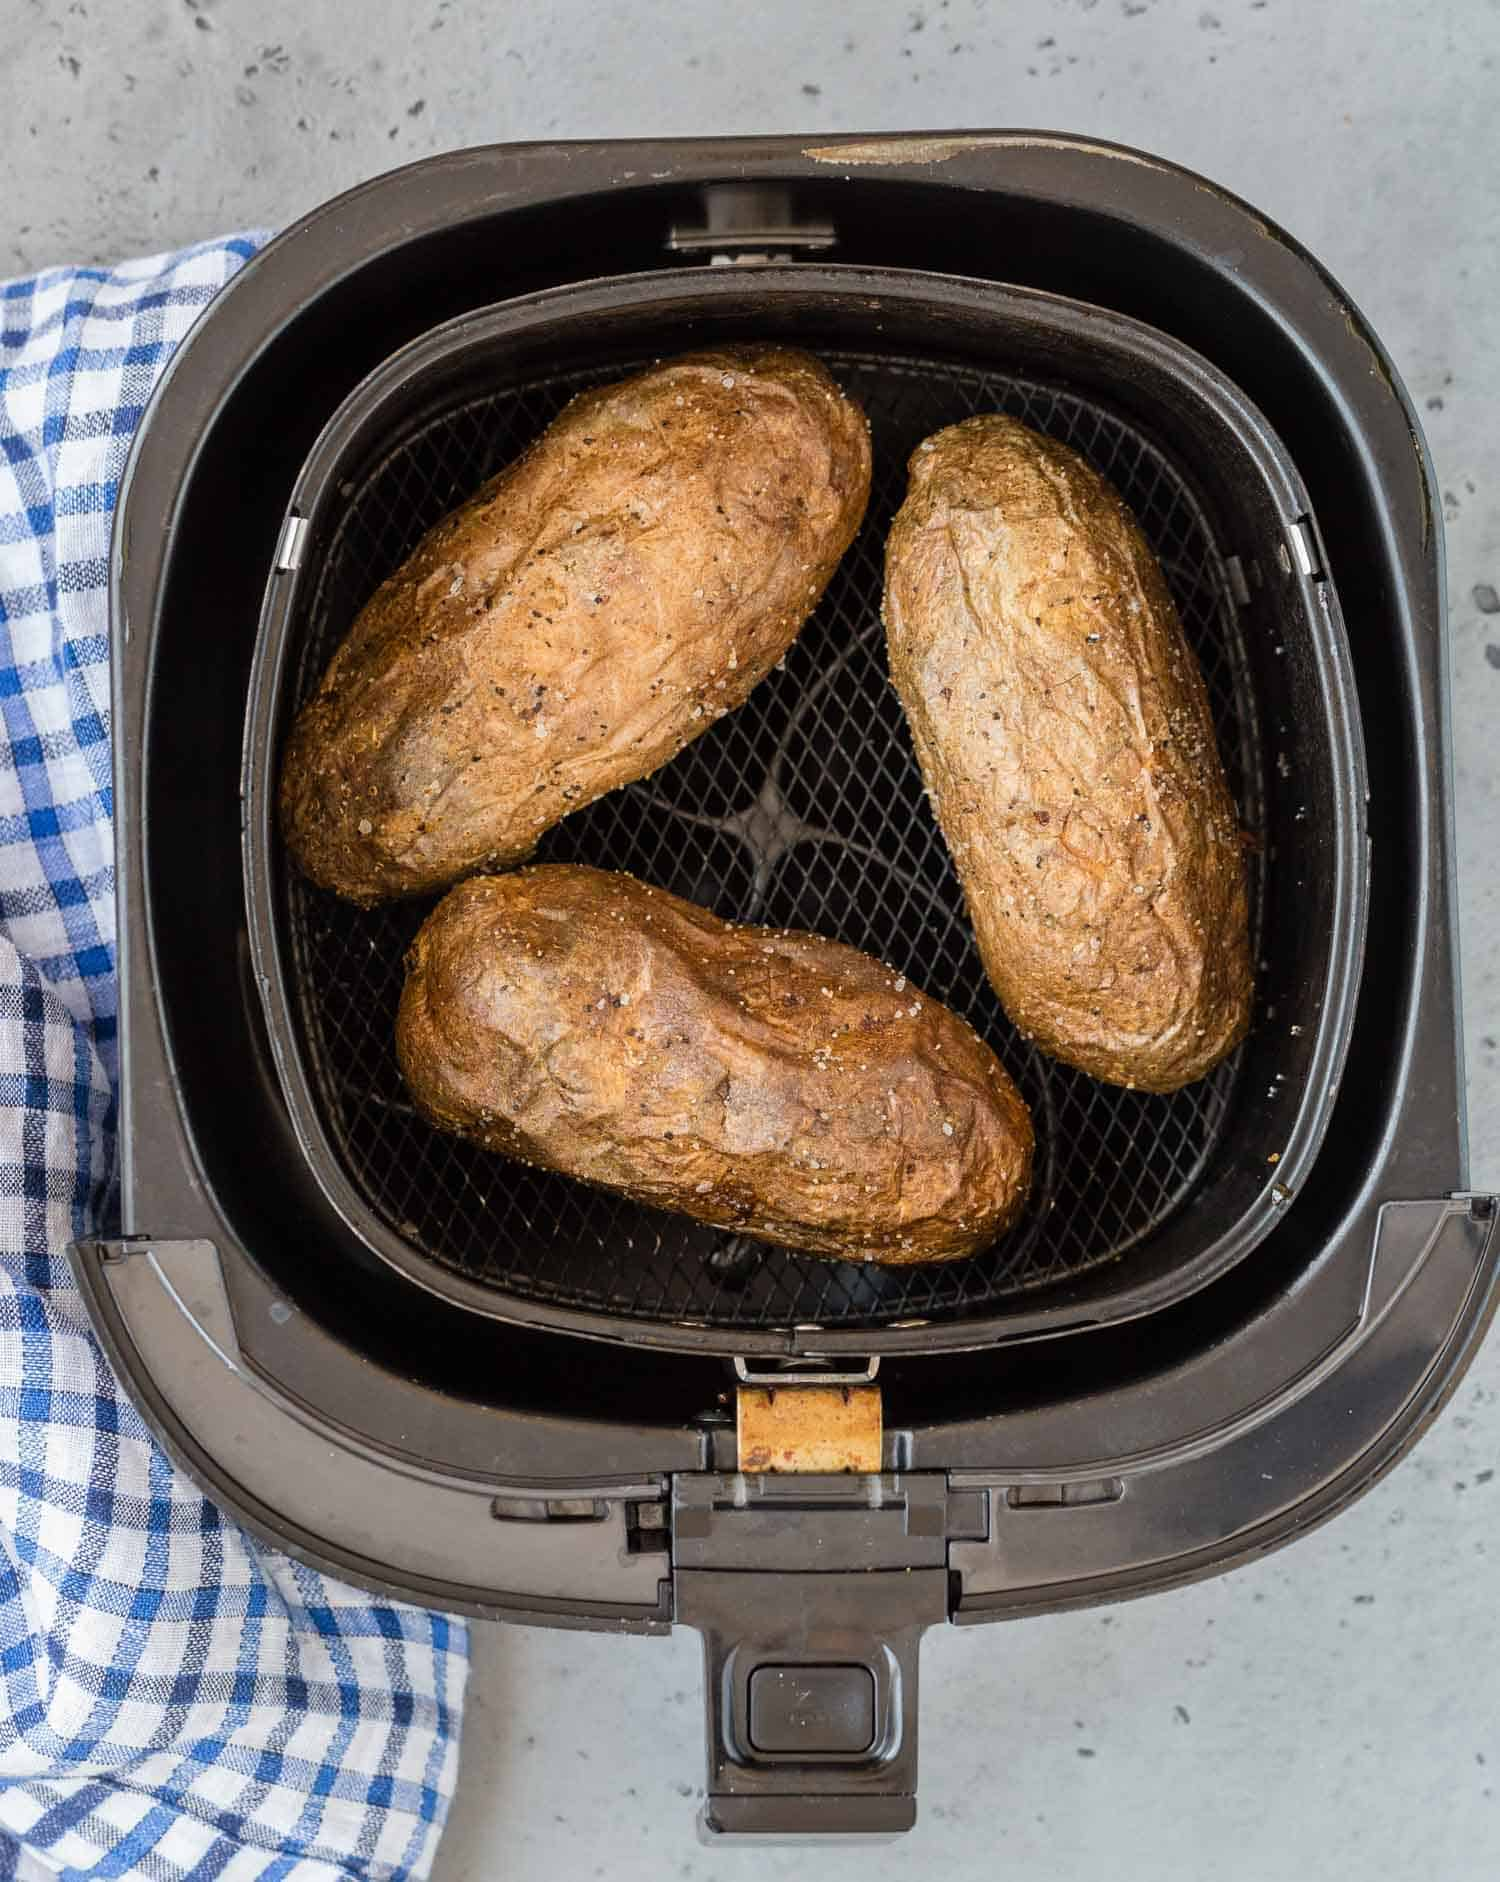 Overhead view of baked potatoes in an air fryer.